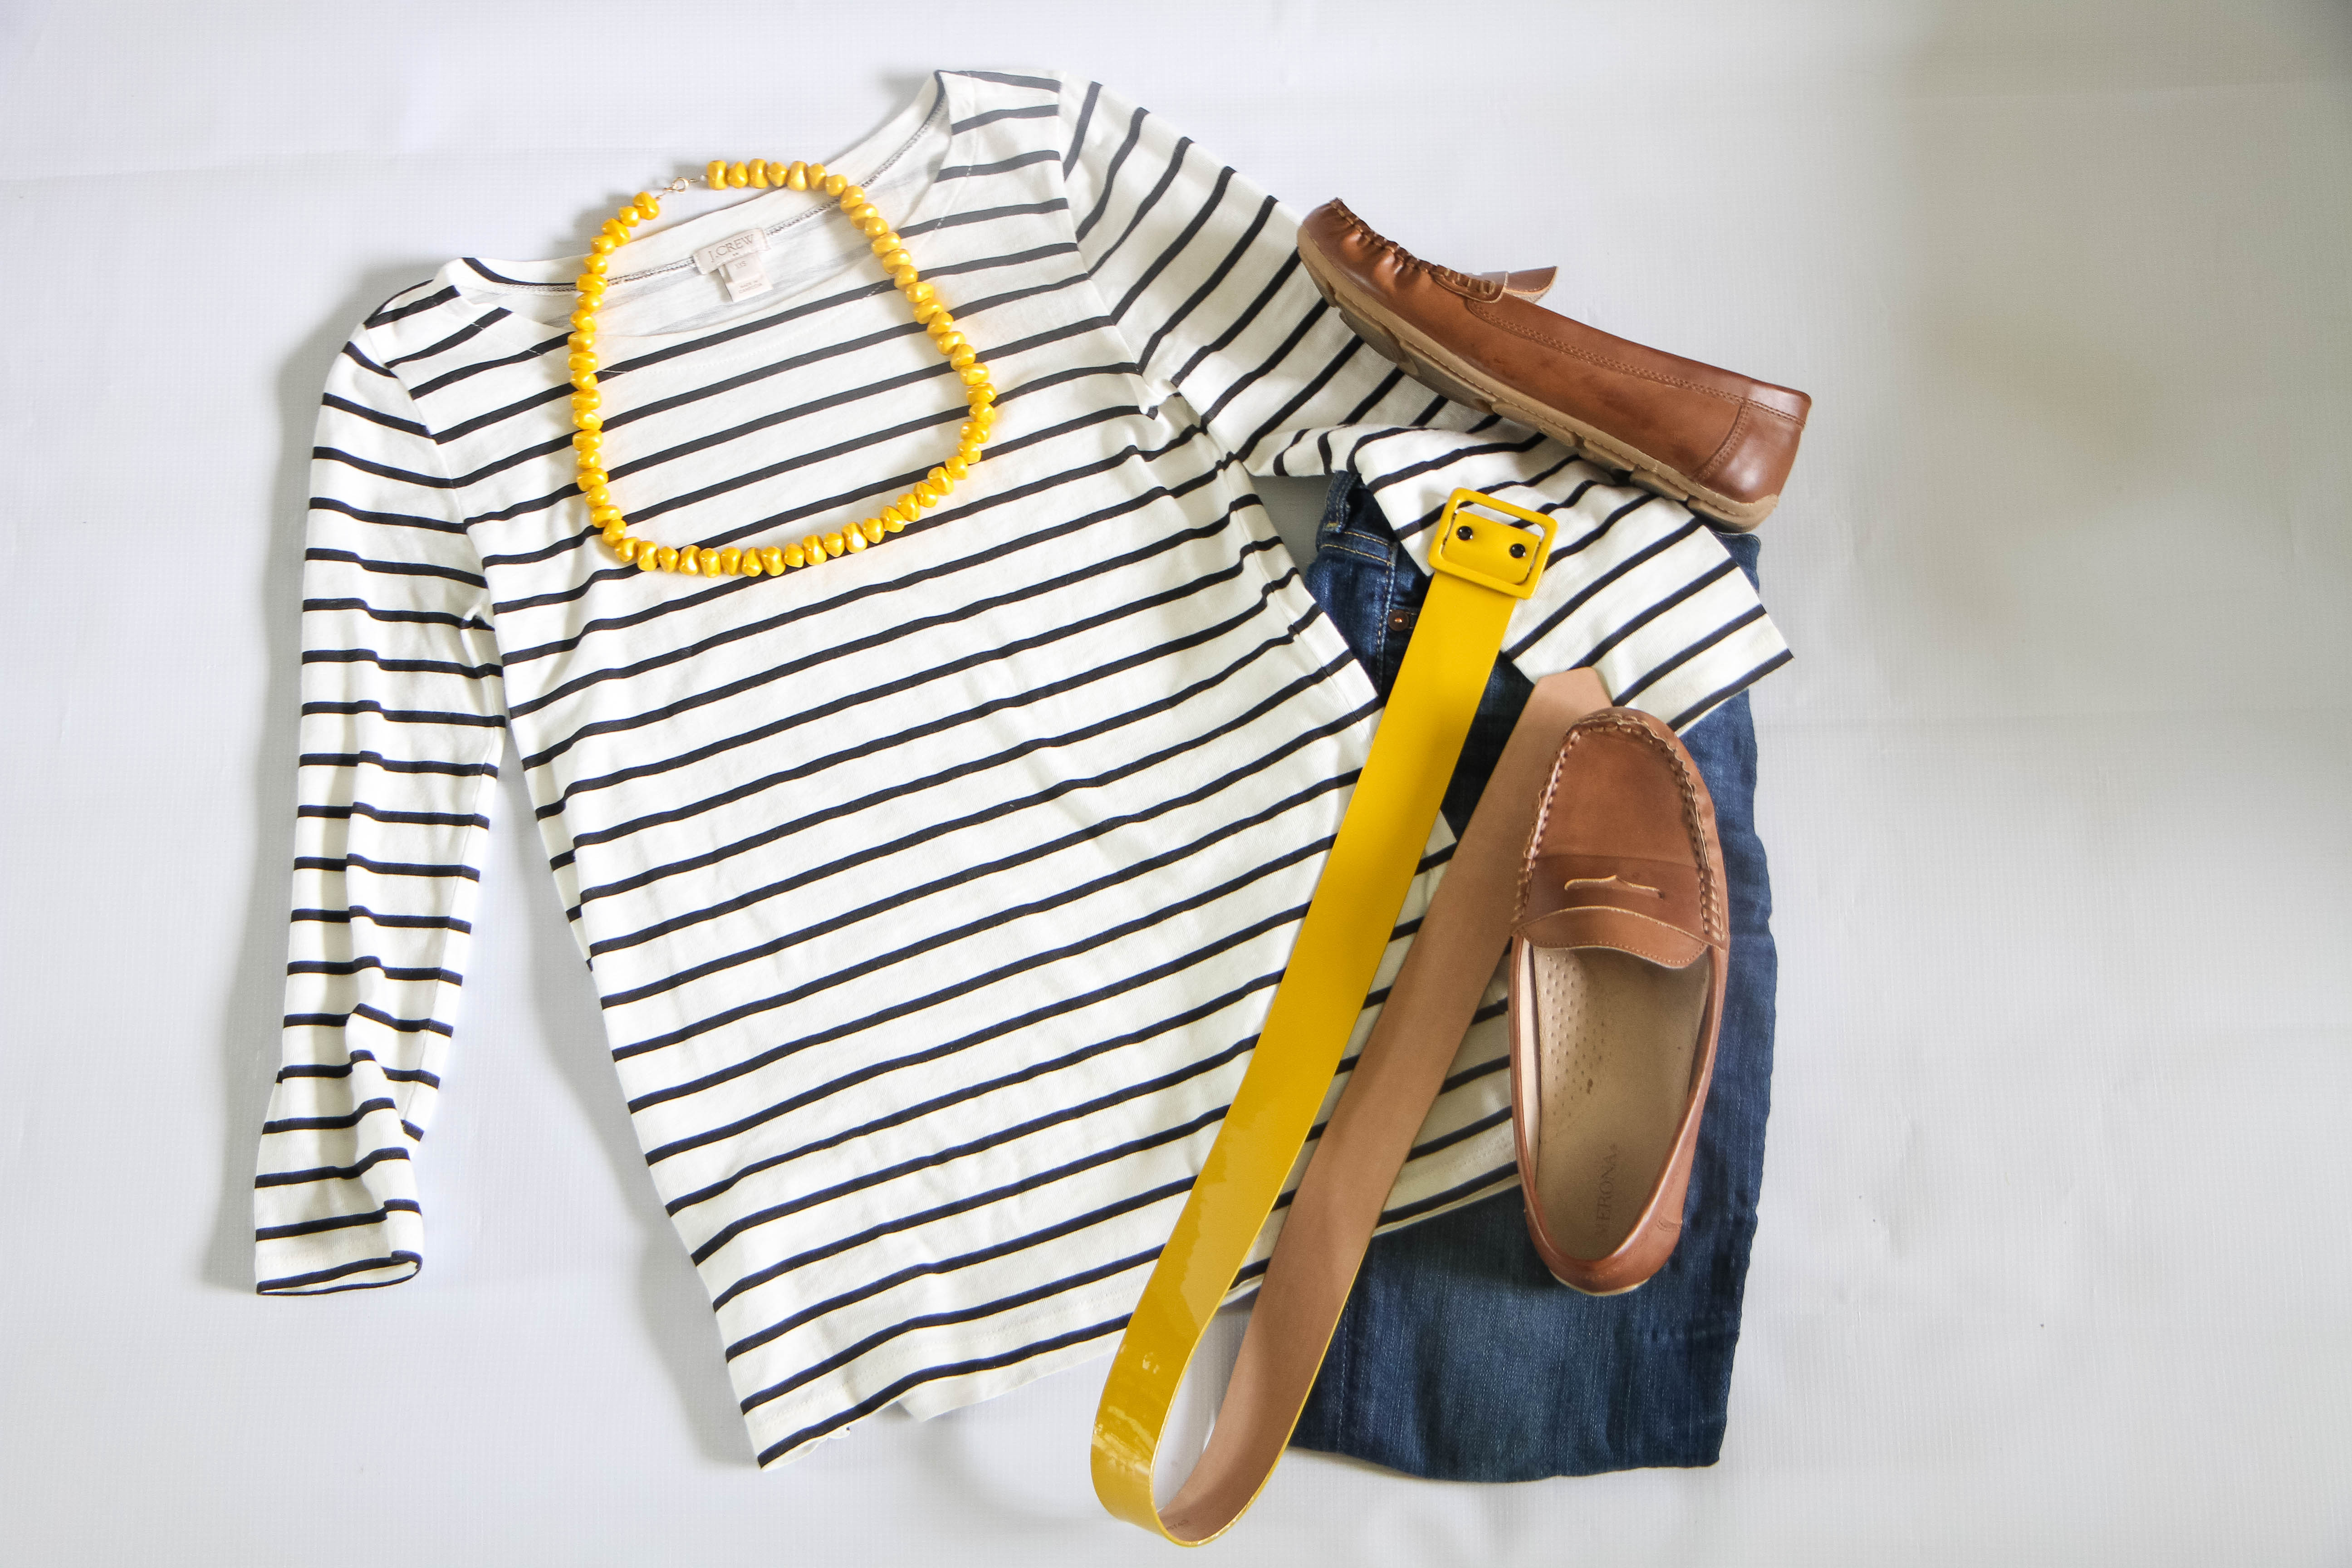 Stripes + Mustard Accessories + Driving Loafers